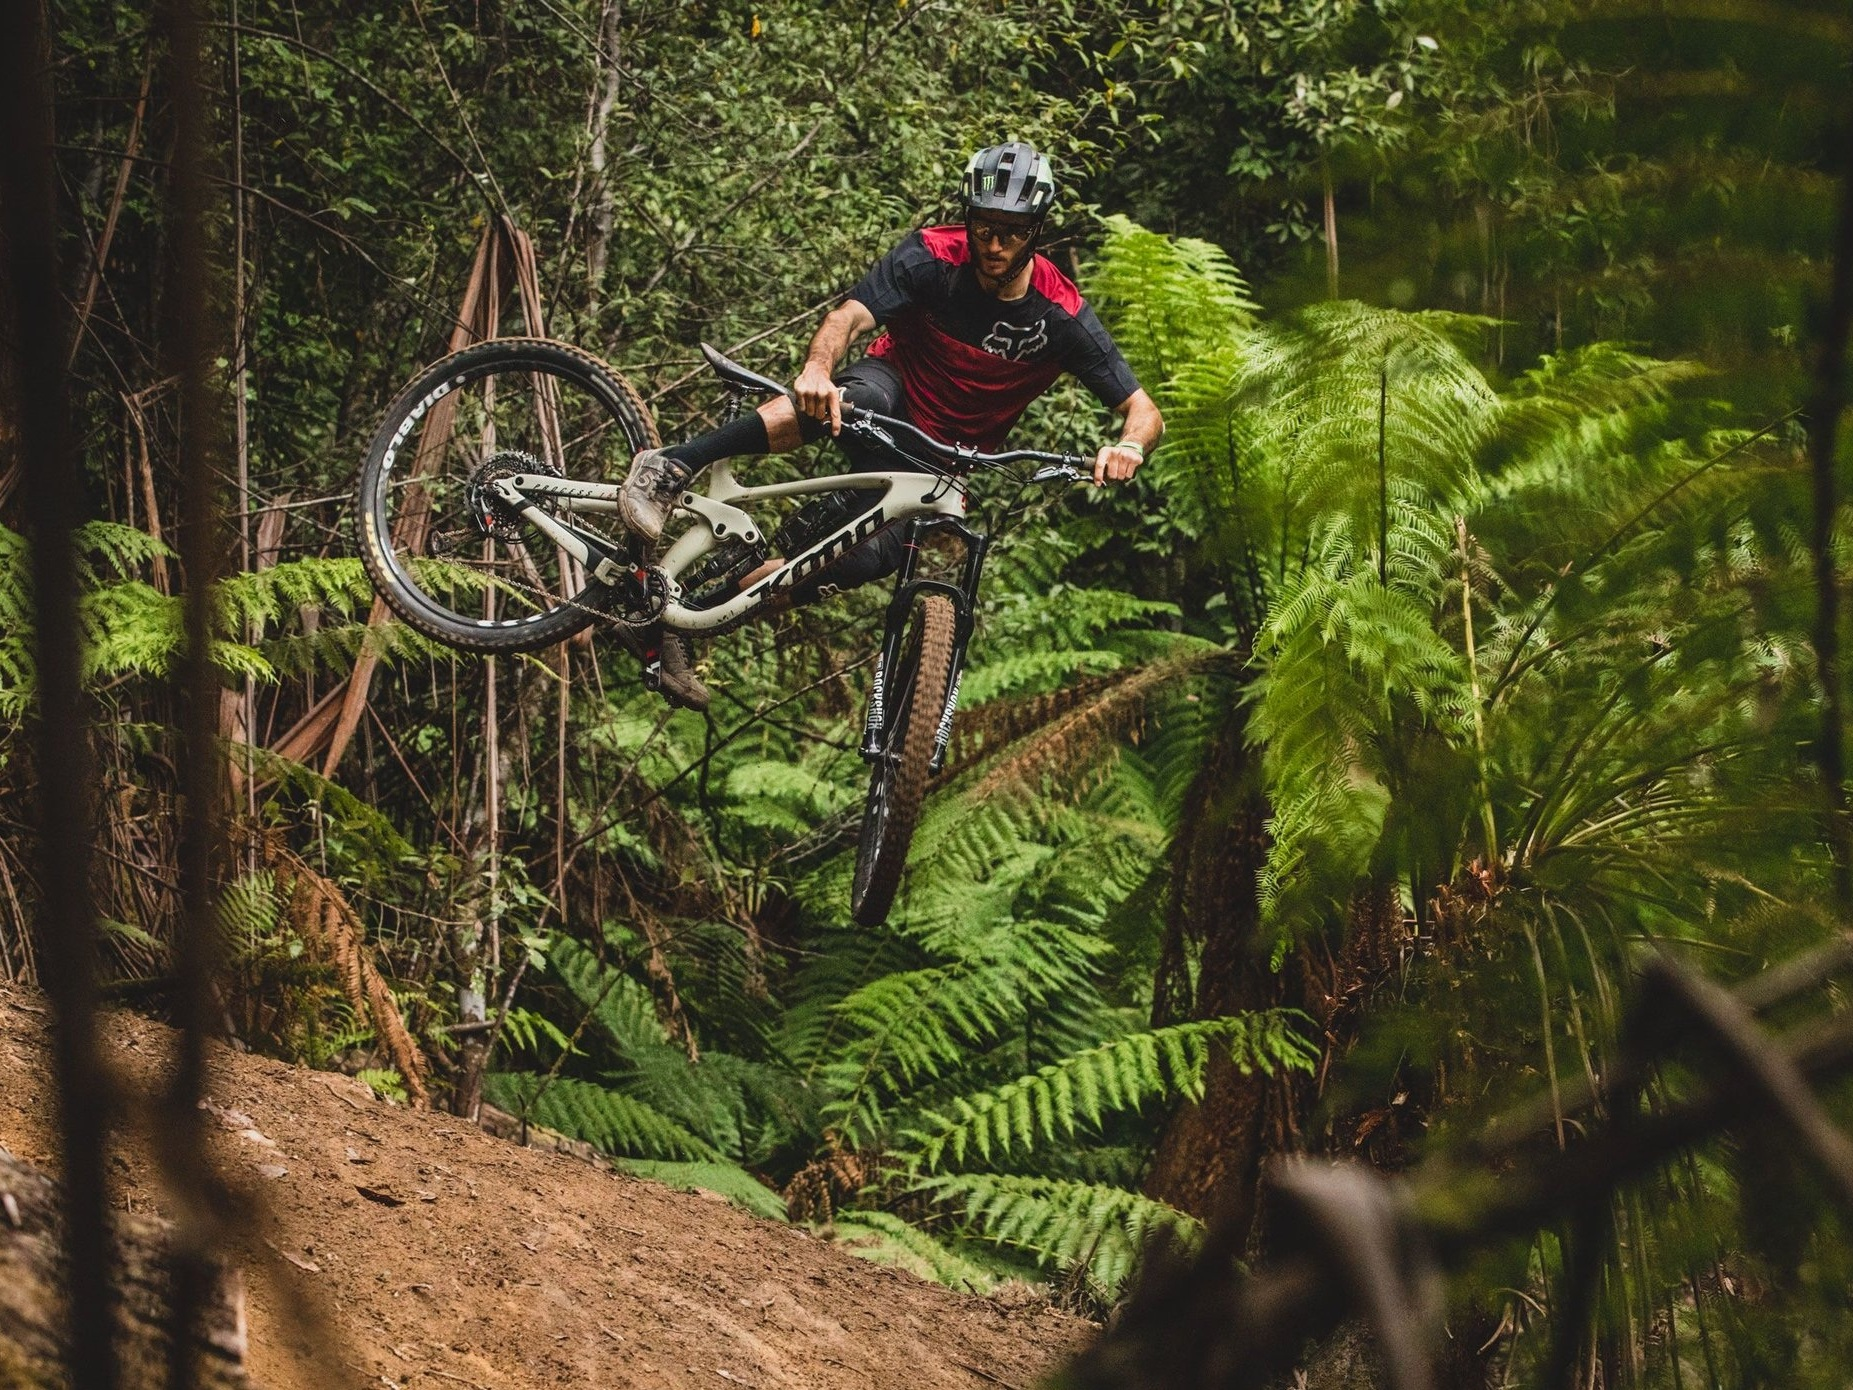 Kona Bikes - Kona are all about the freedom and empowerment of the bicycle. Their story began in 1988, and still have the same founding owners. They pioneered Mountain Biking from it's infancy the global sport we know it as today like no other brand.